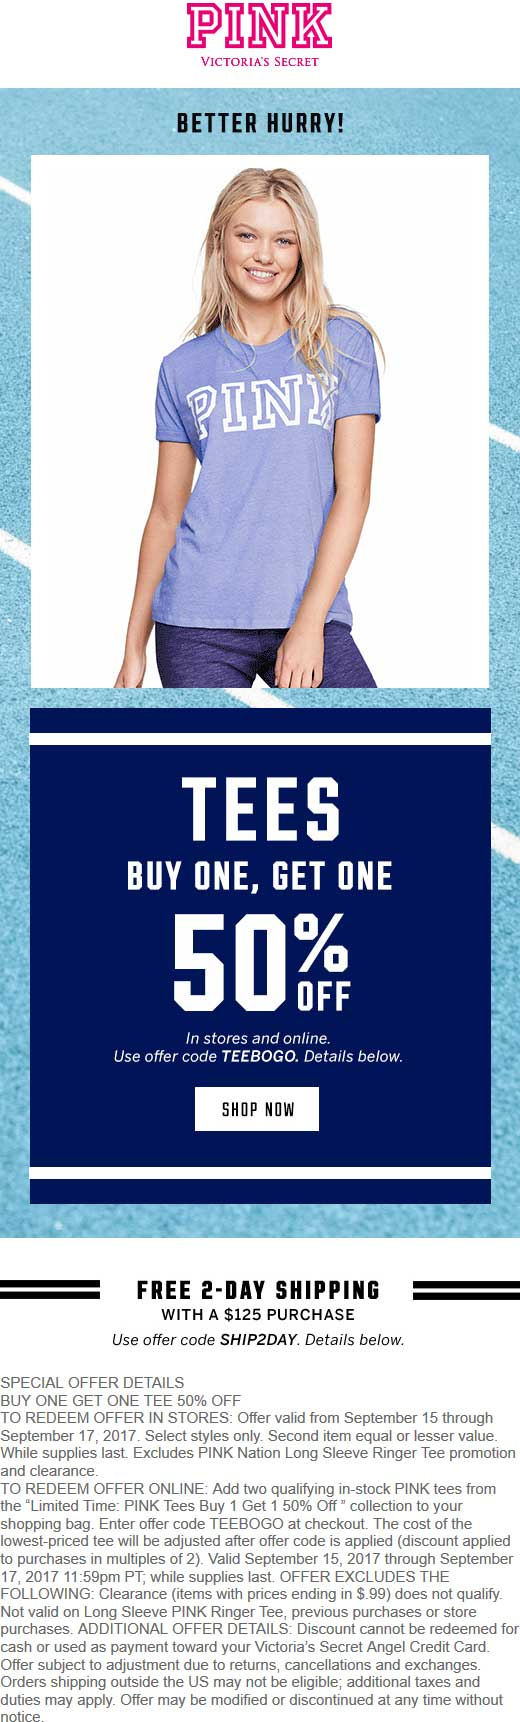 Victorias Secret Coupon August 2018 Second tee 50% off at Victorias Secret PINK, or online via promo code TEEBOGO